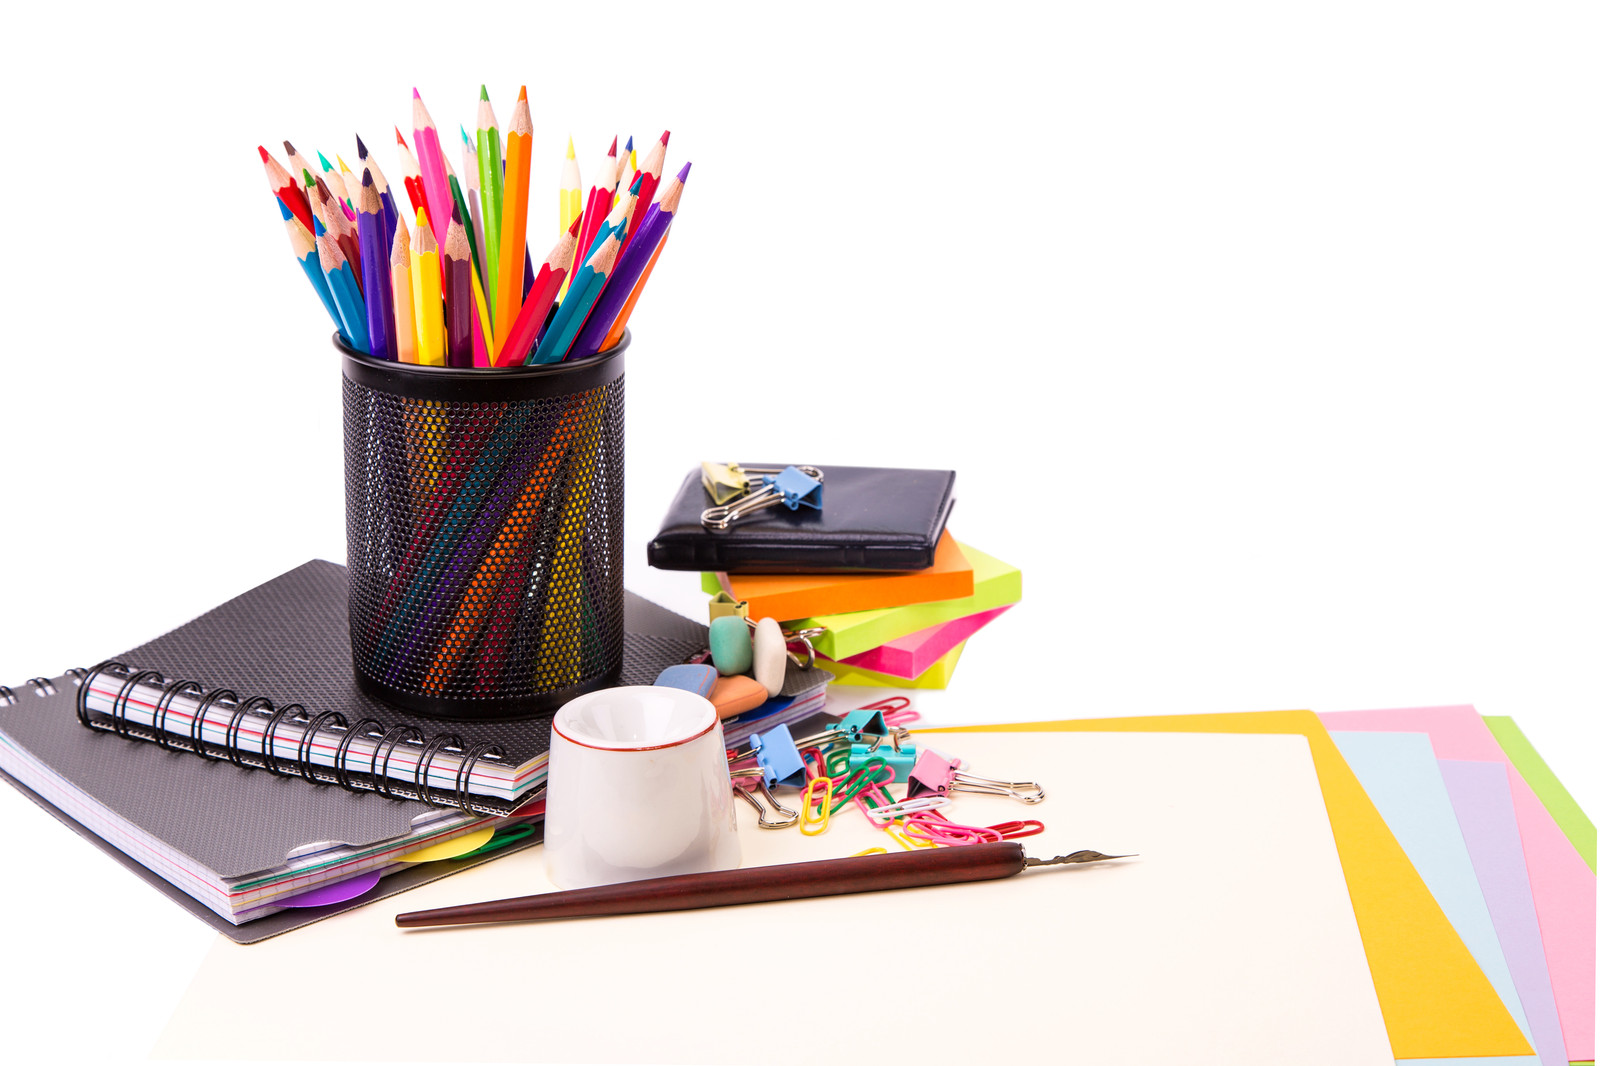 Abbey Office Supplies Ireland - Online Shop for Office Pictures of office stationery